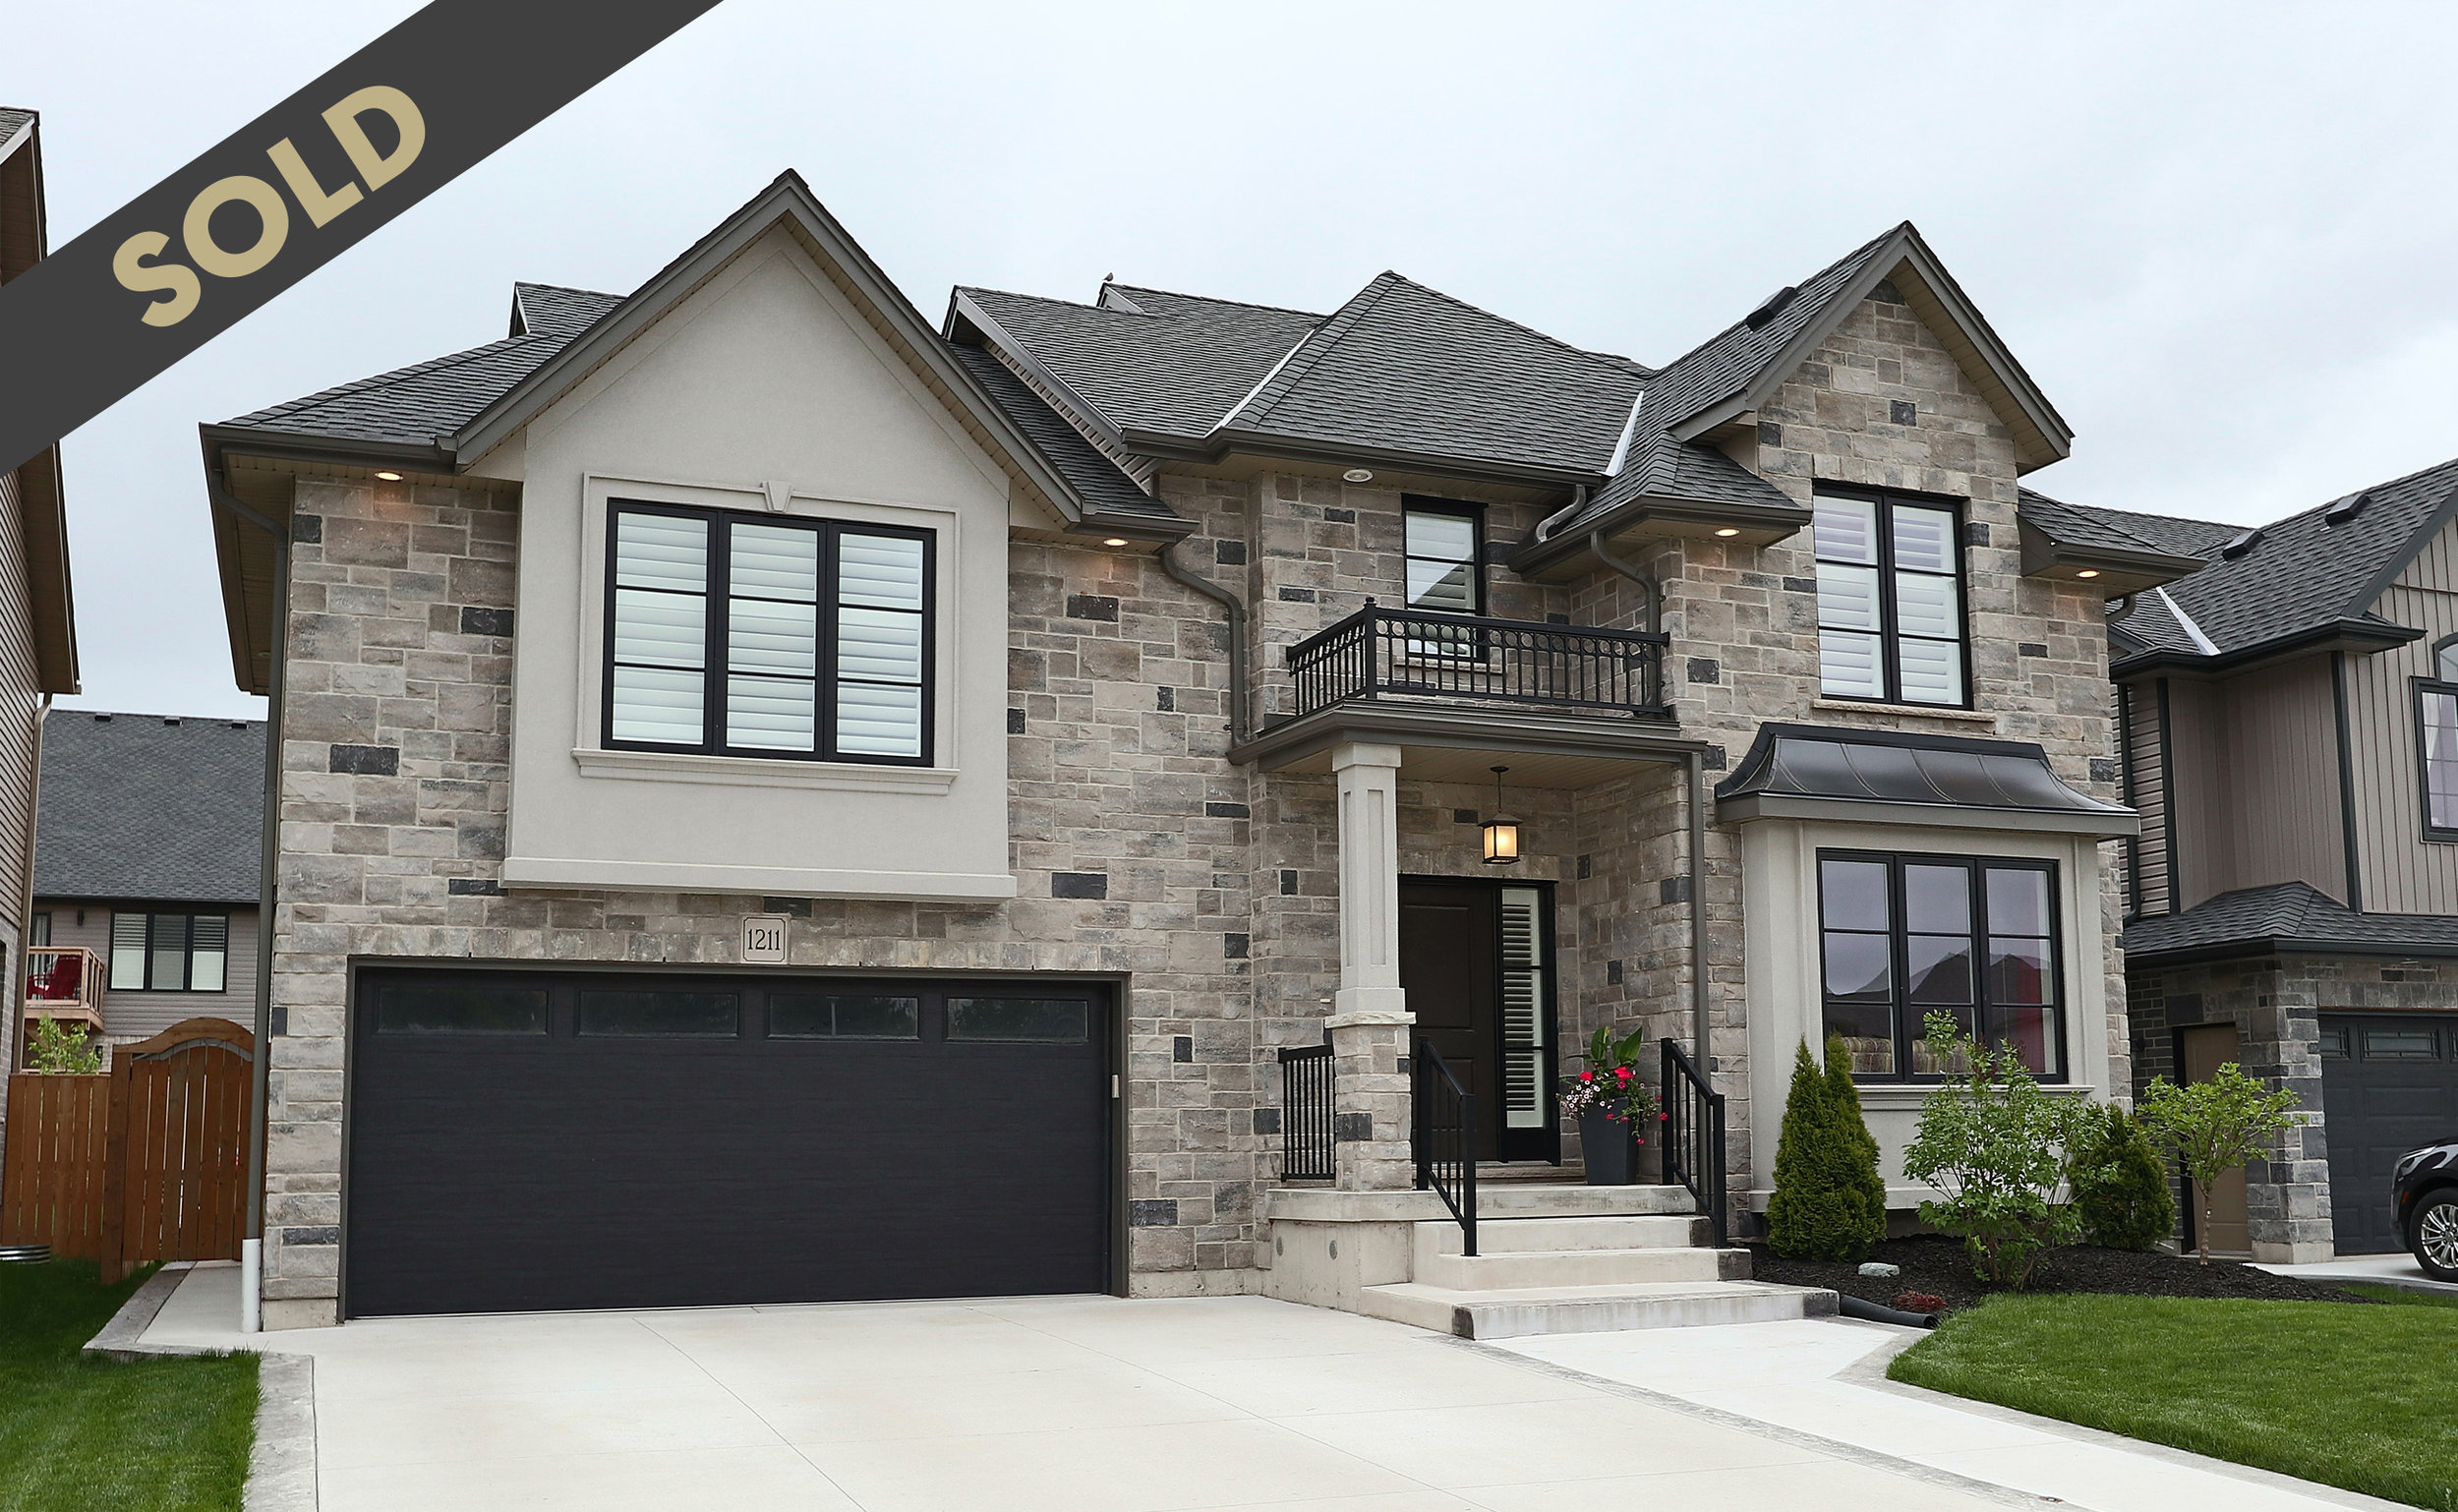 - 1211 Alberni Road, WoodstockSold Asking $629,9004 beds/3 bath